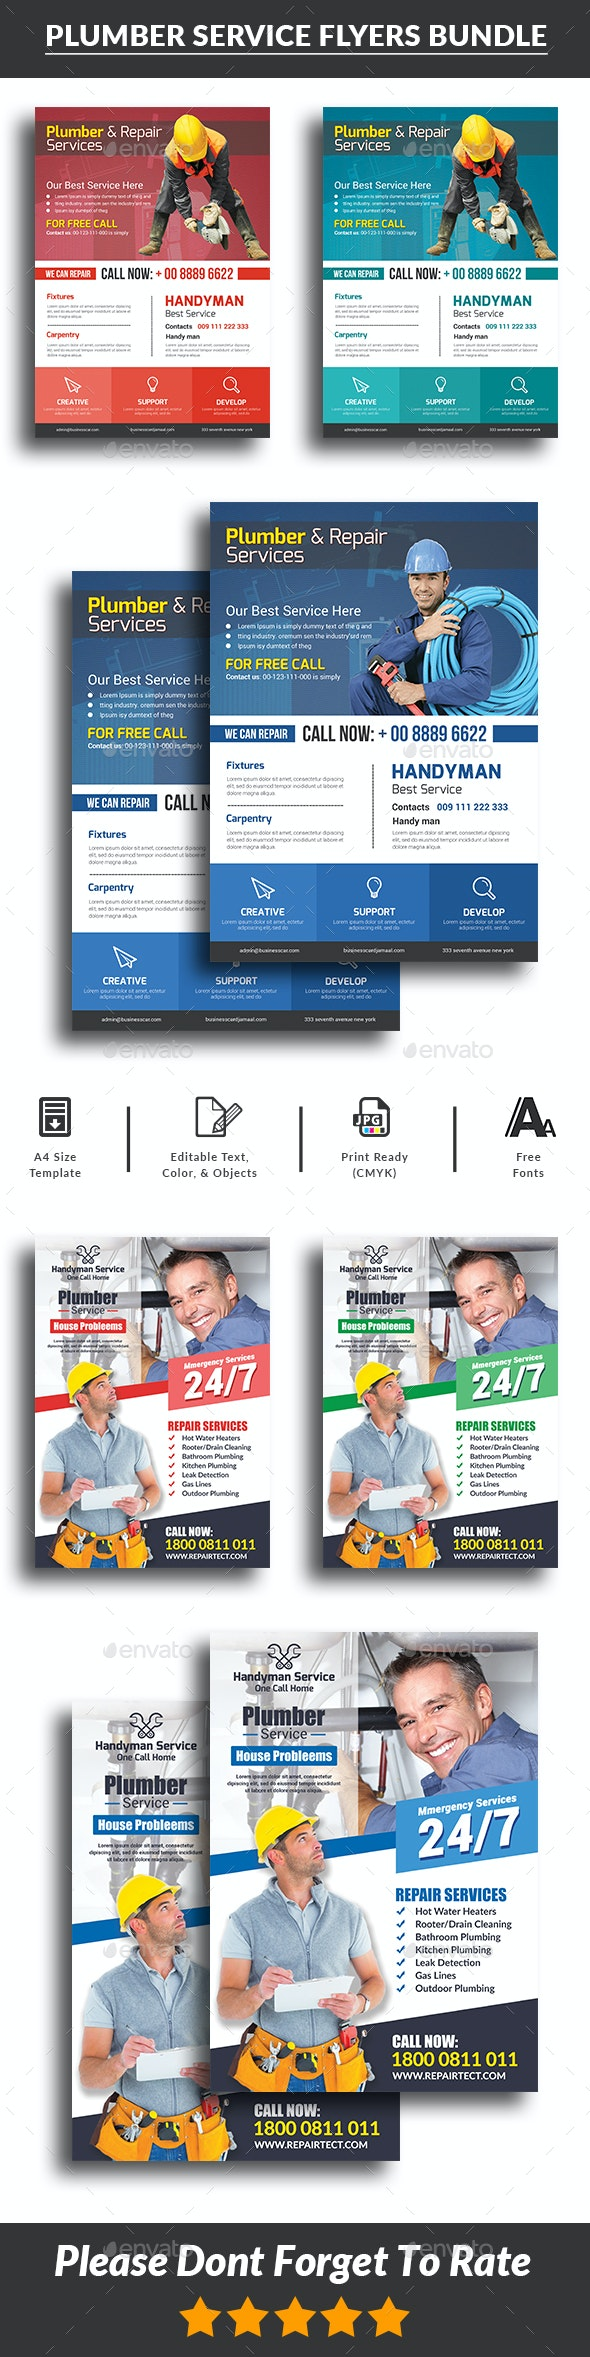 Plumber Service Flyers Bundle Templates - Corporate Flyers